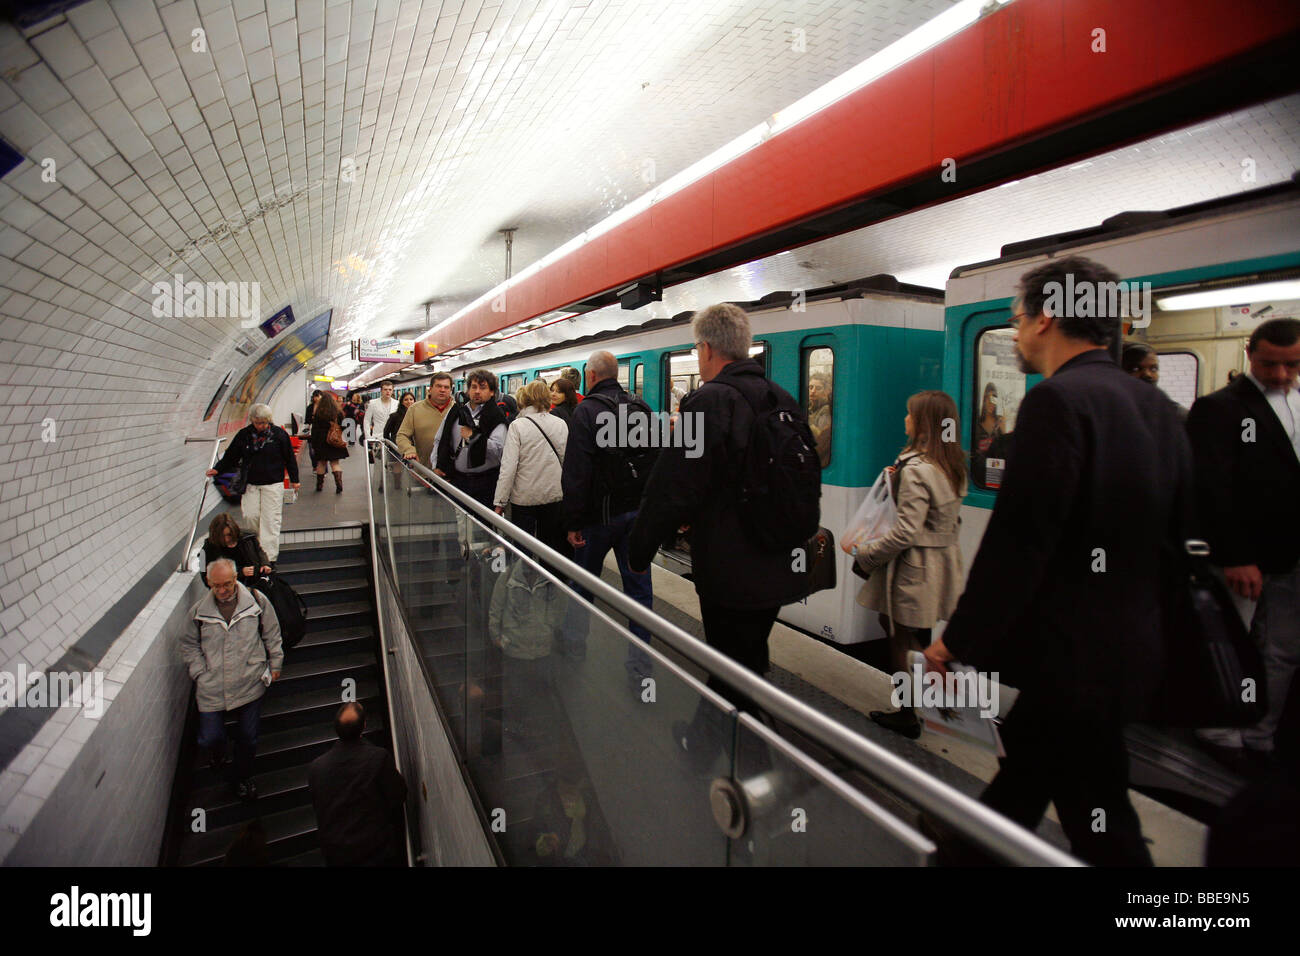 Chatelet Stock Photos & Chatelet Stock Images - Alamy